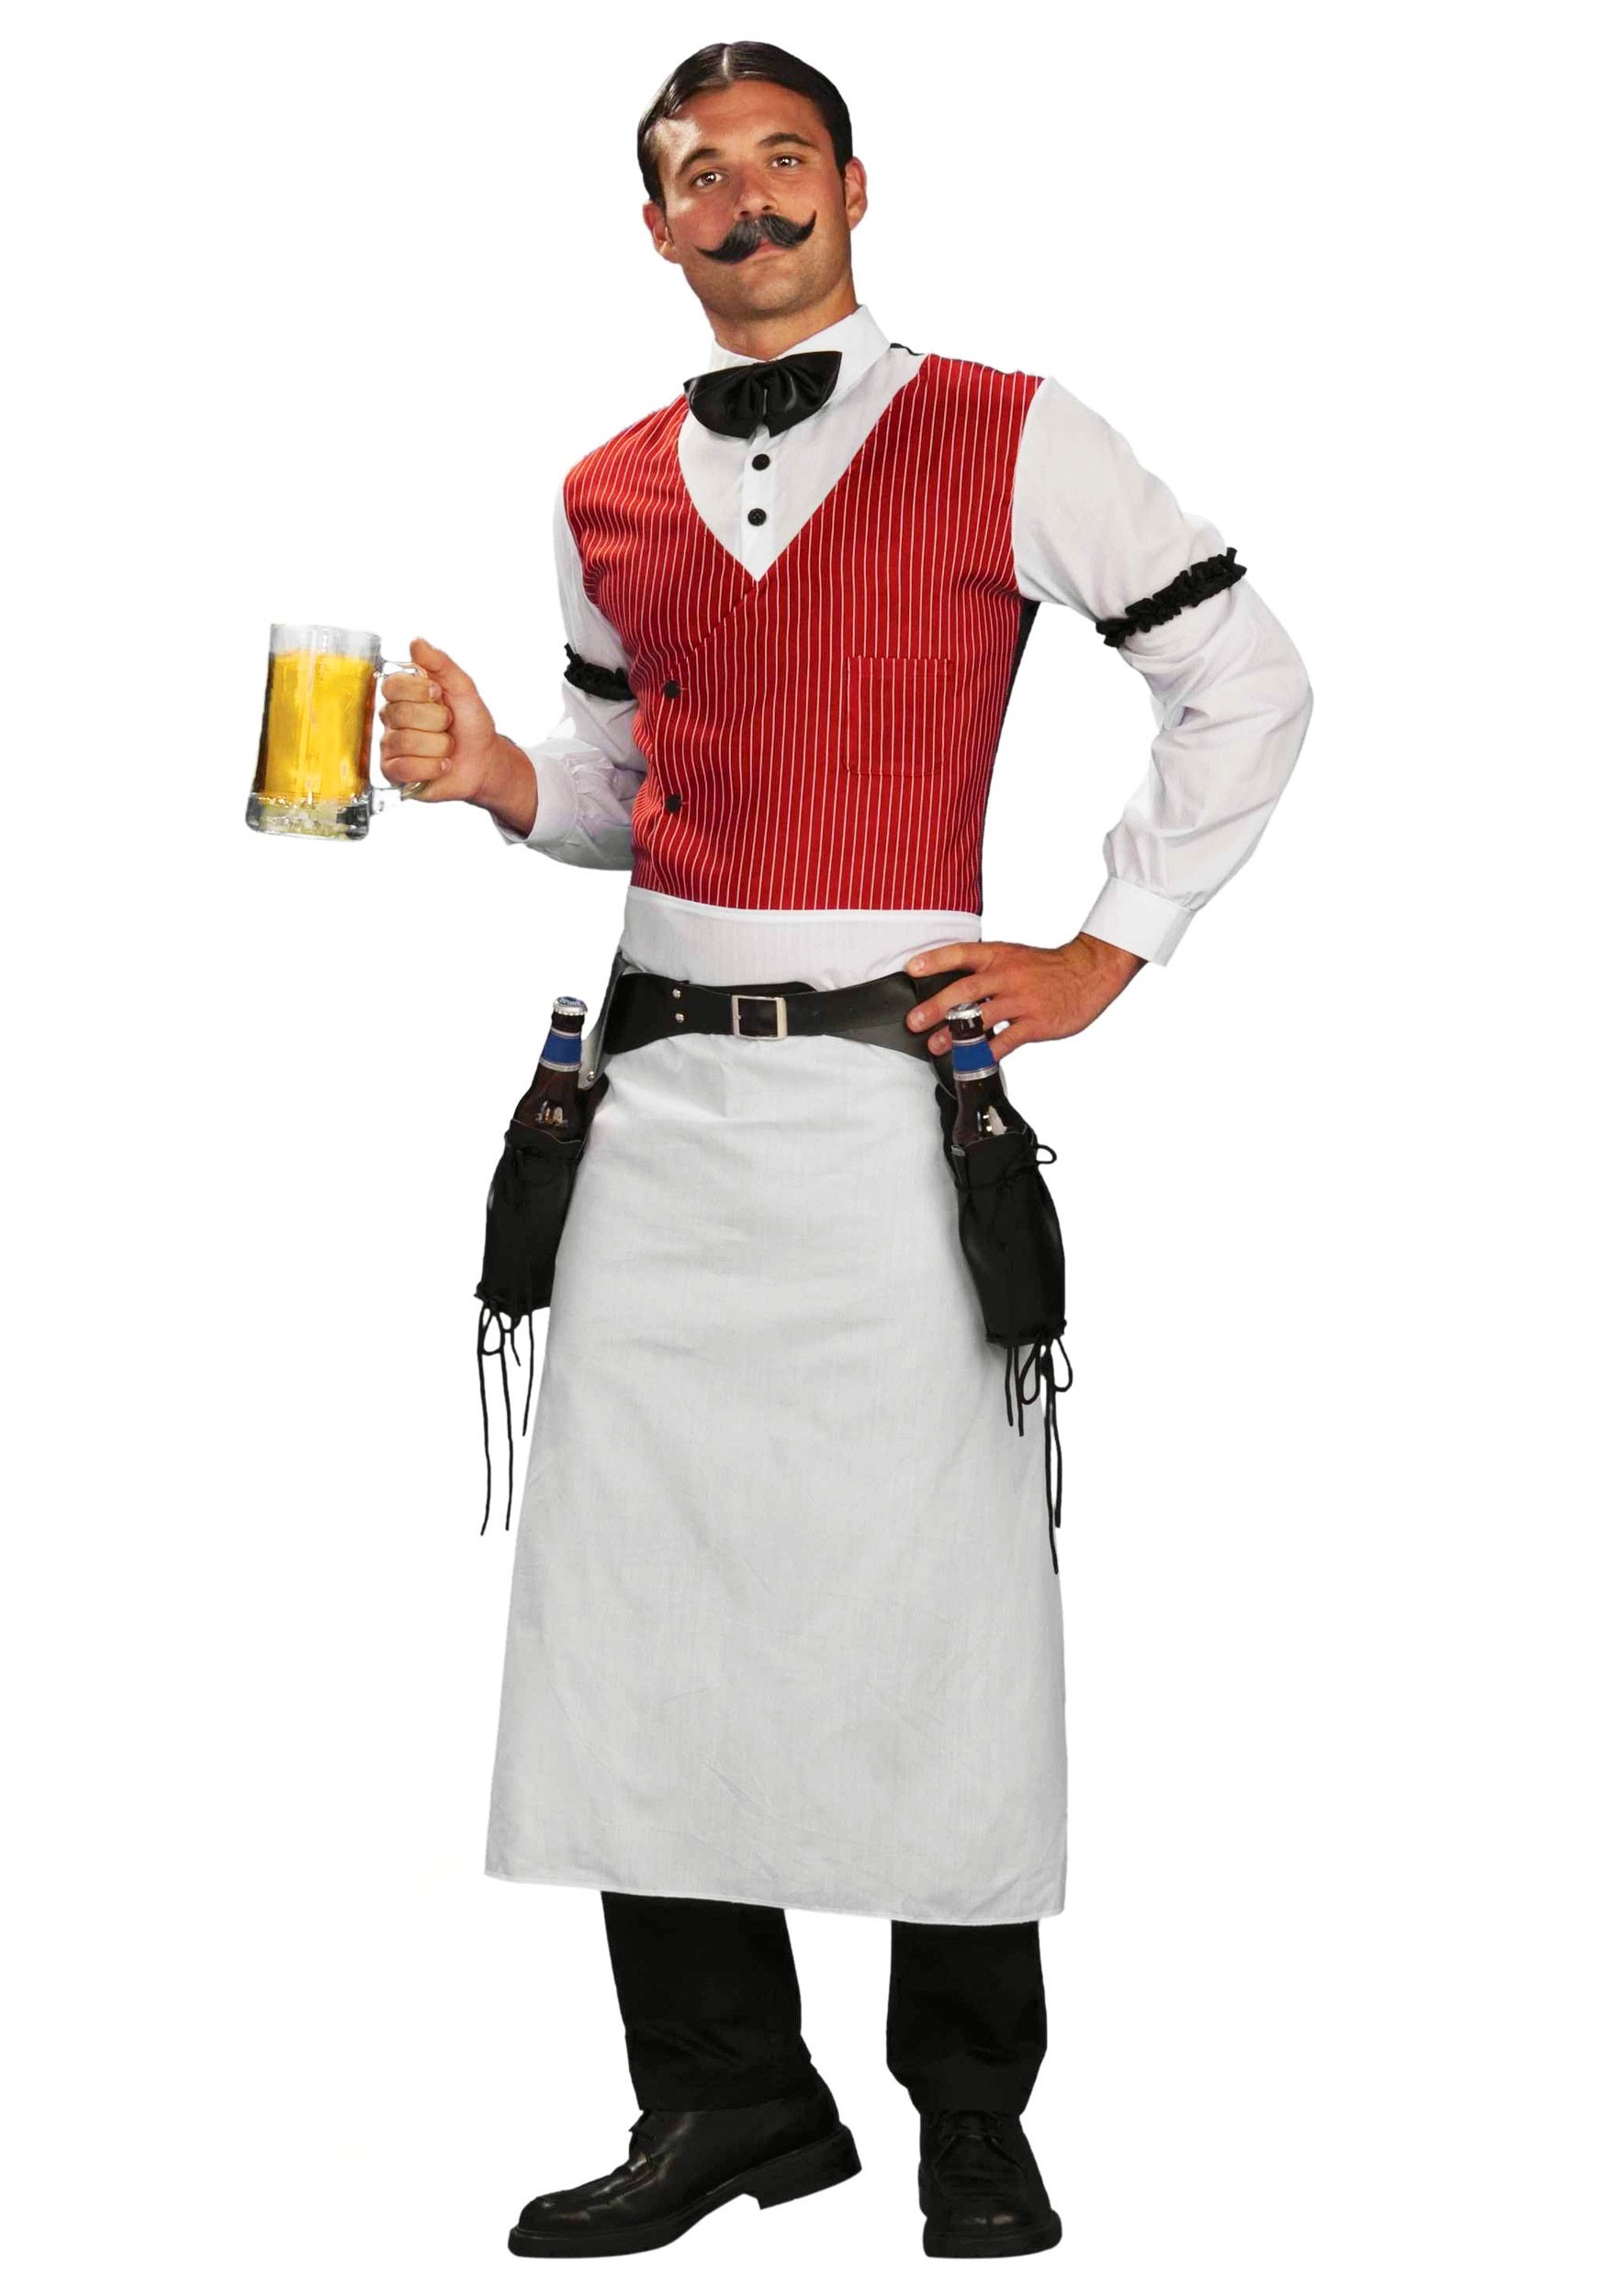 Plus Size Saloon Bartender Costume  sc 1 st  Halloween Costumes 2018 at CostumeVip.com | Halloween Costume Ideas 2018 & Western Plus Size Costumes